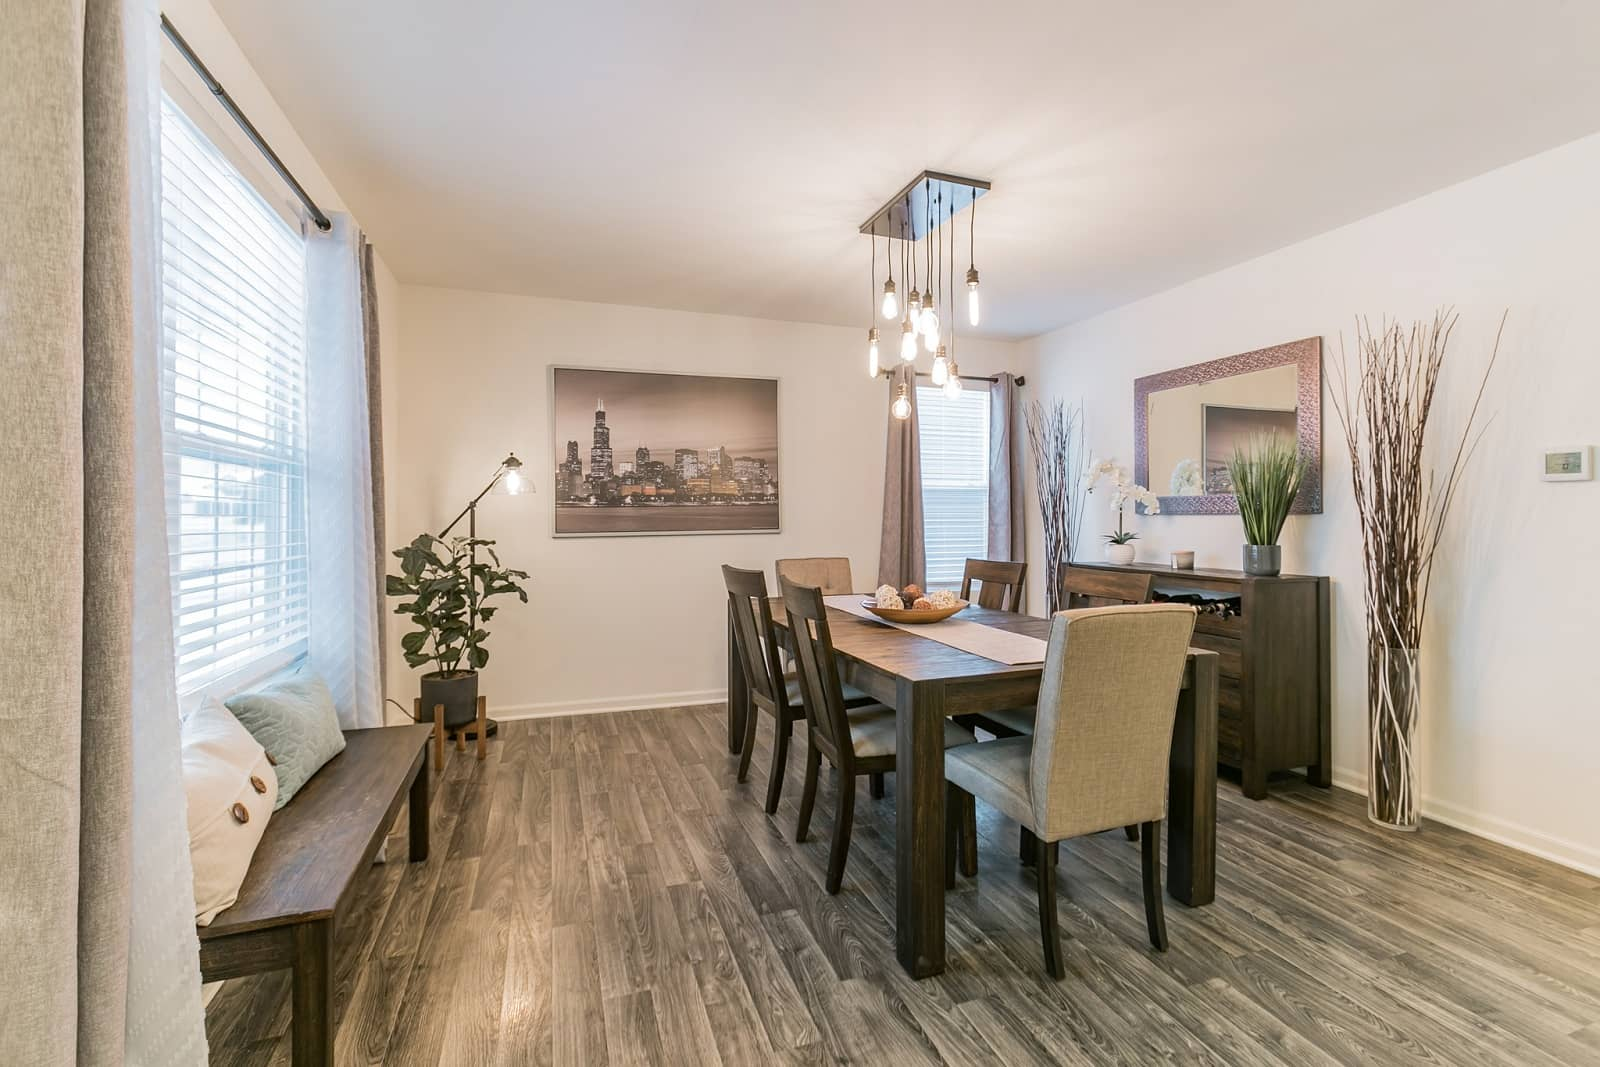 Real Estate Photography in Joliet - IL - USA - Dining Area View